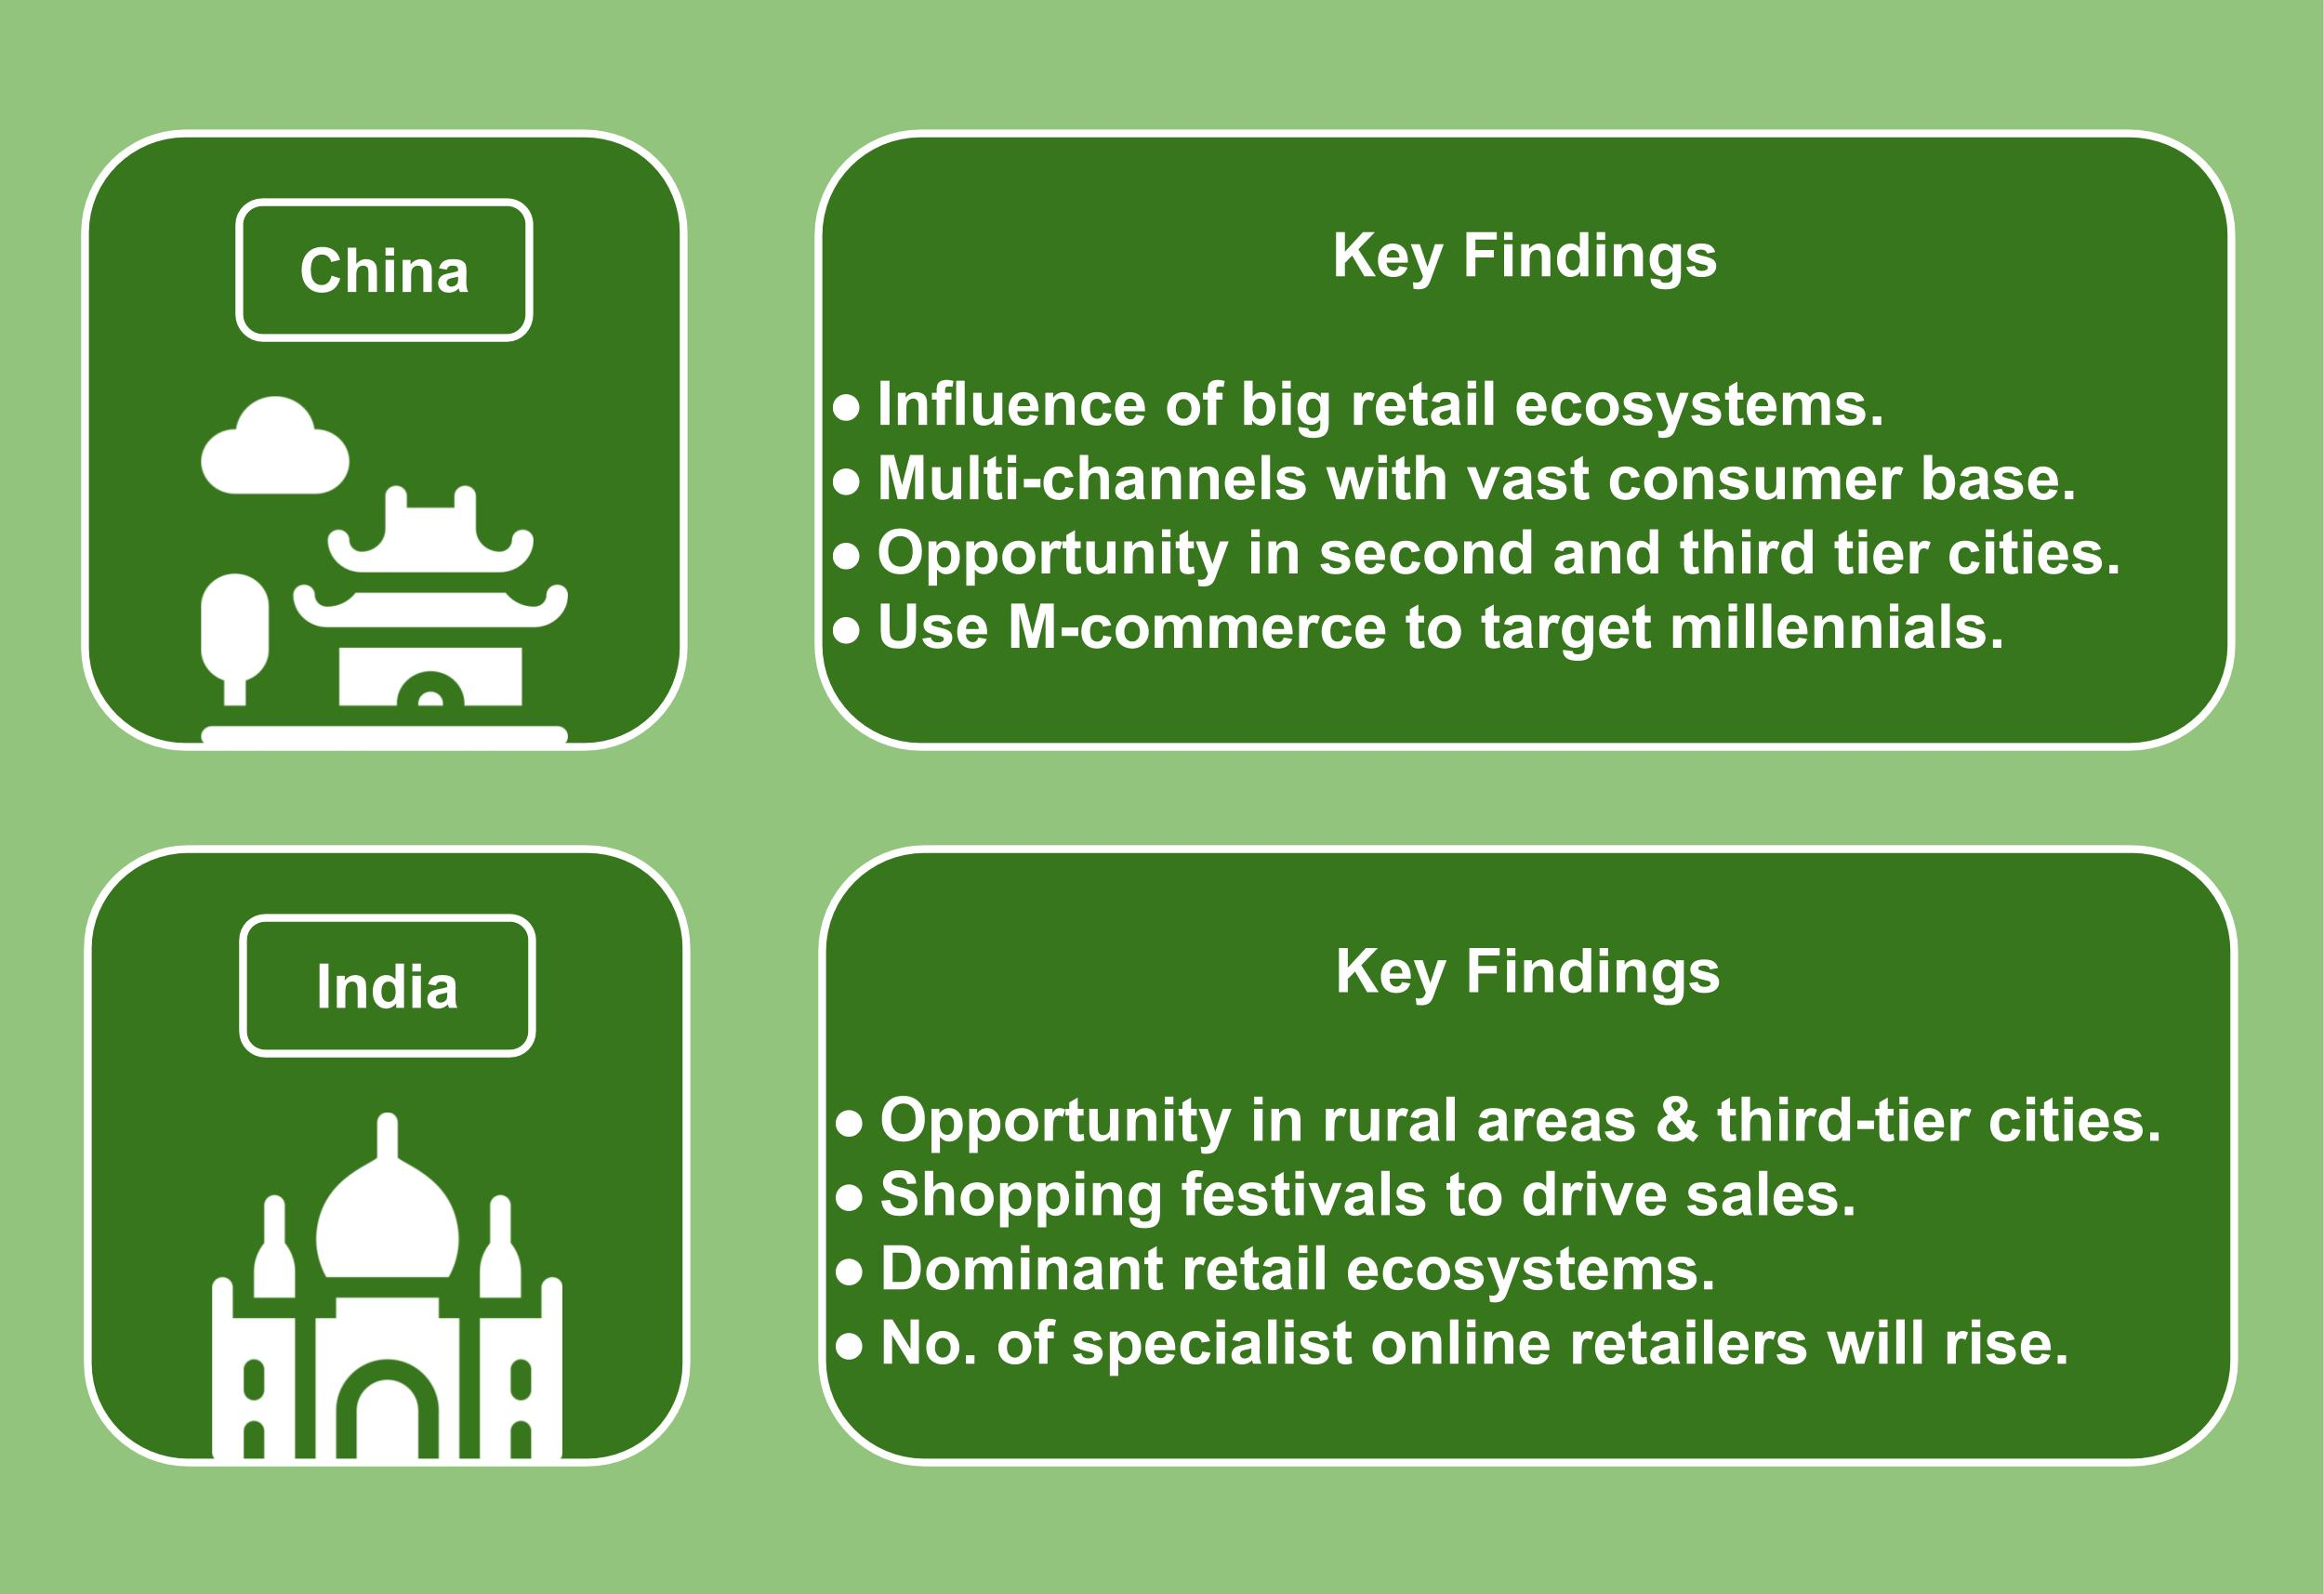 Online Retailing in Asia Pacific - Key Findings